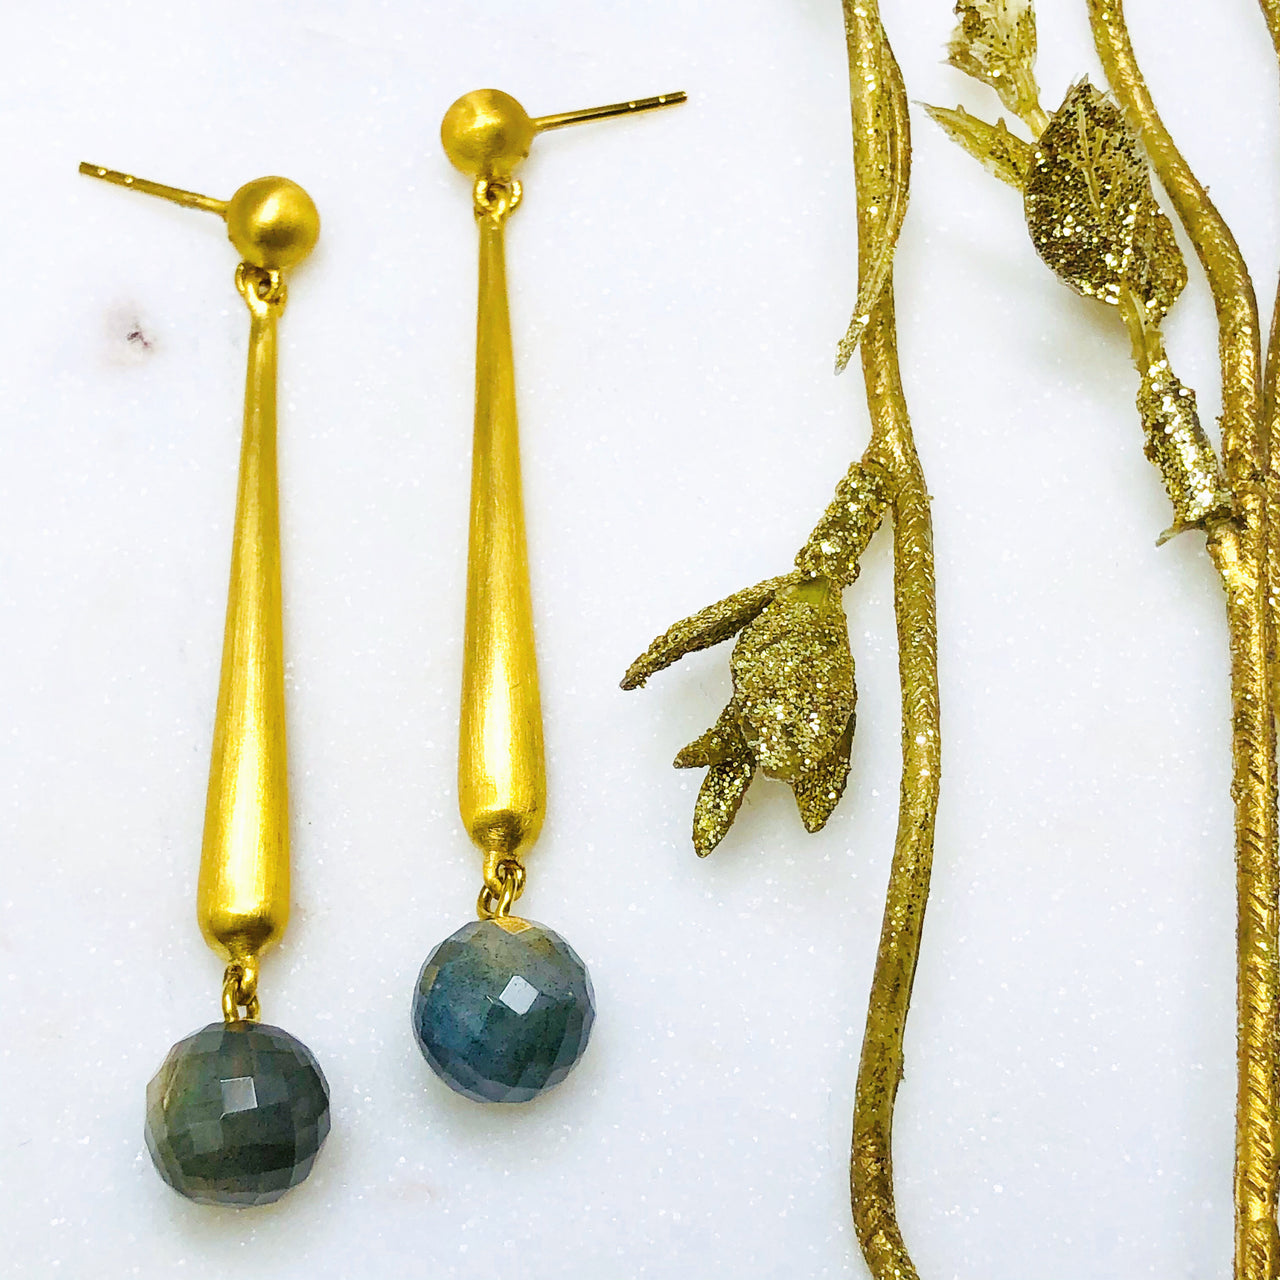 22k Gold Plated Labradorite Earrings.